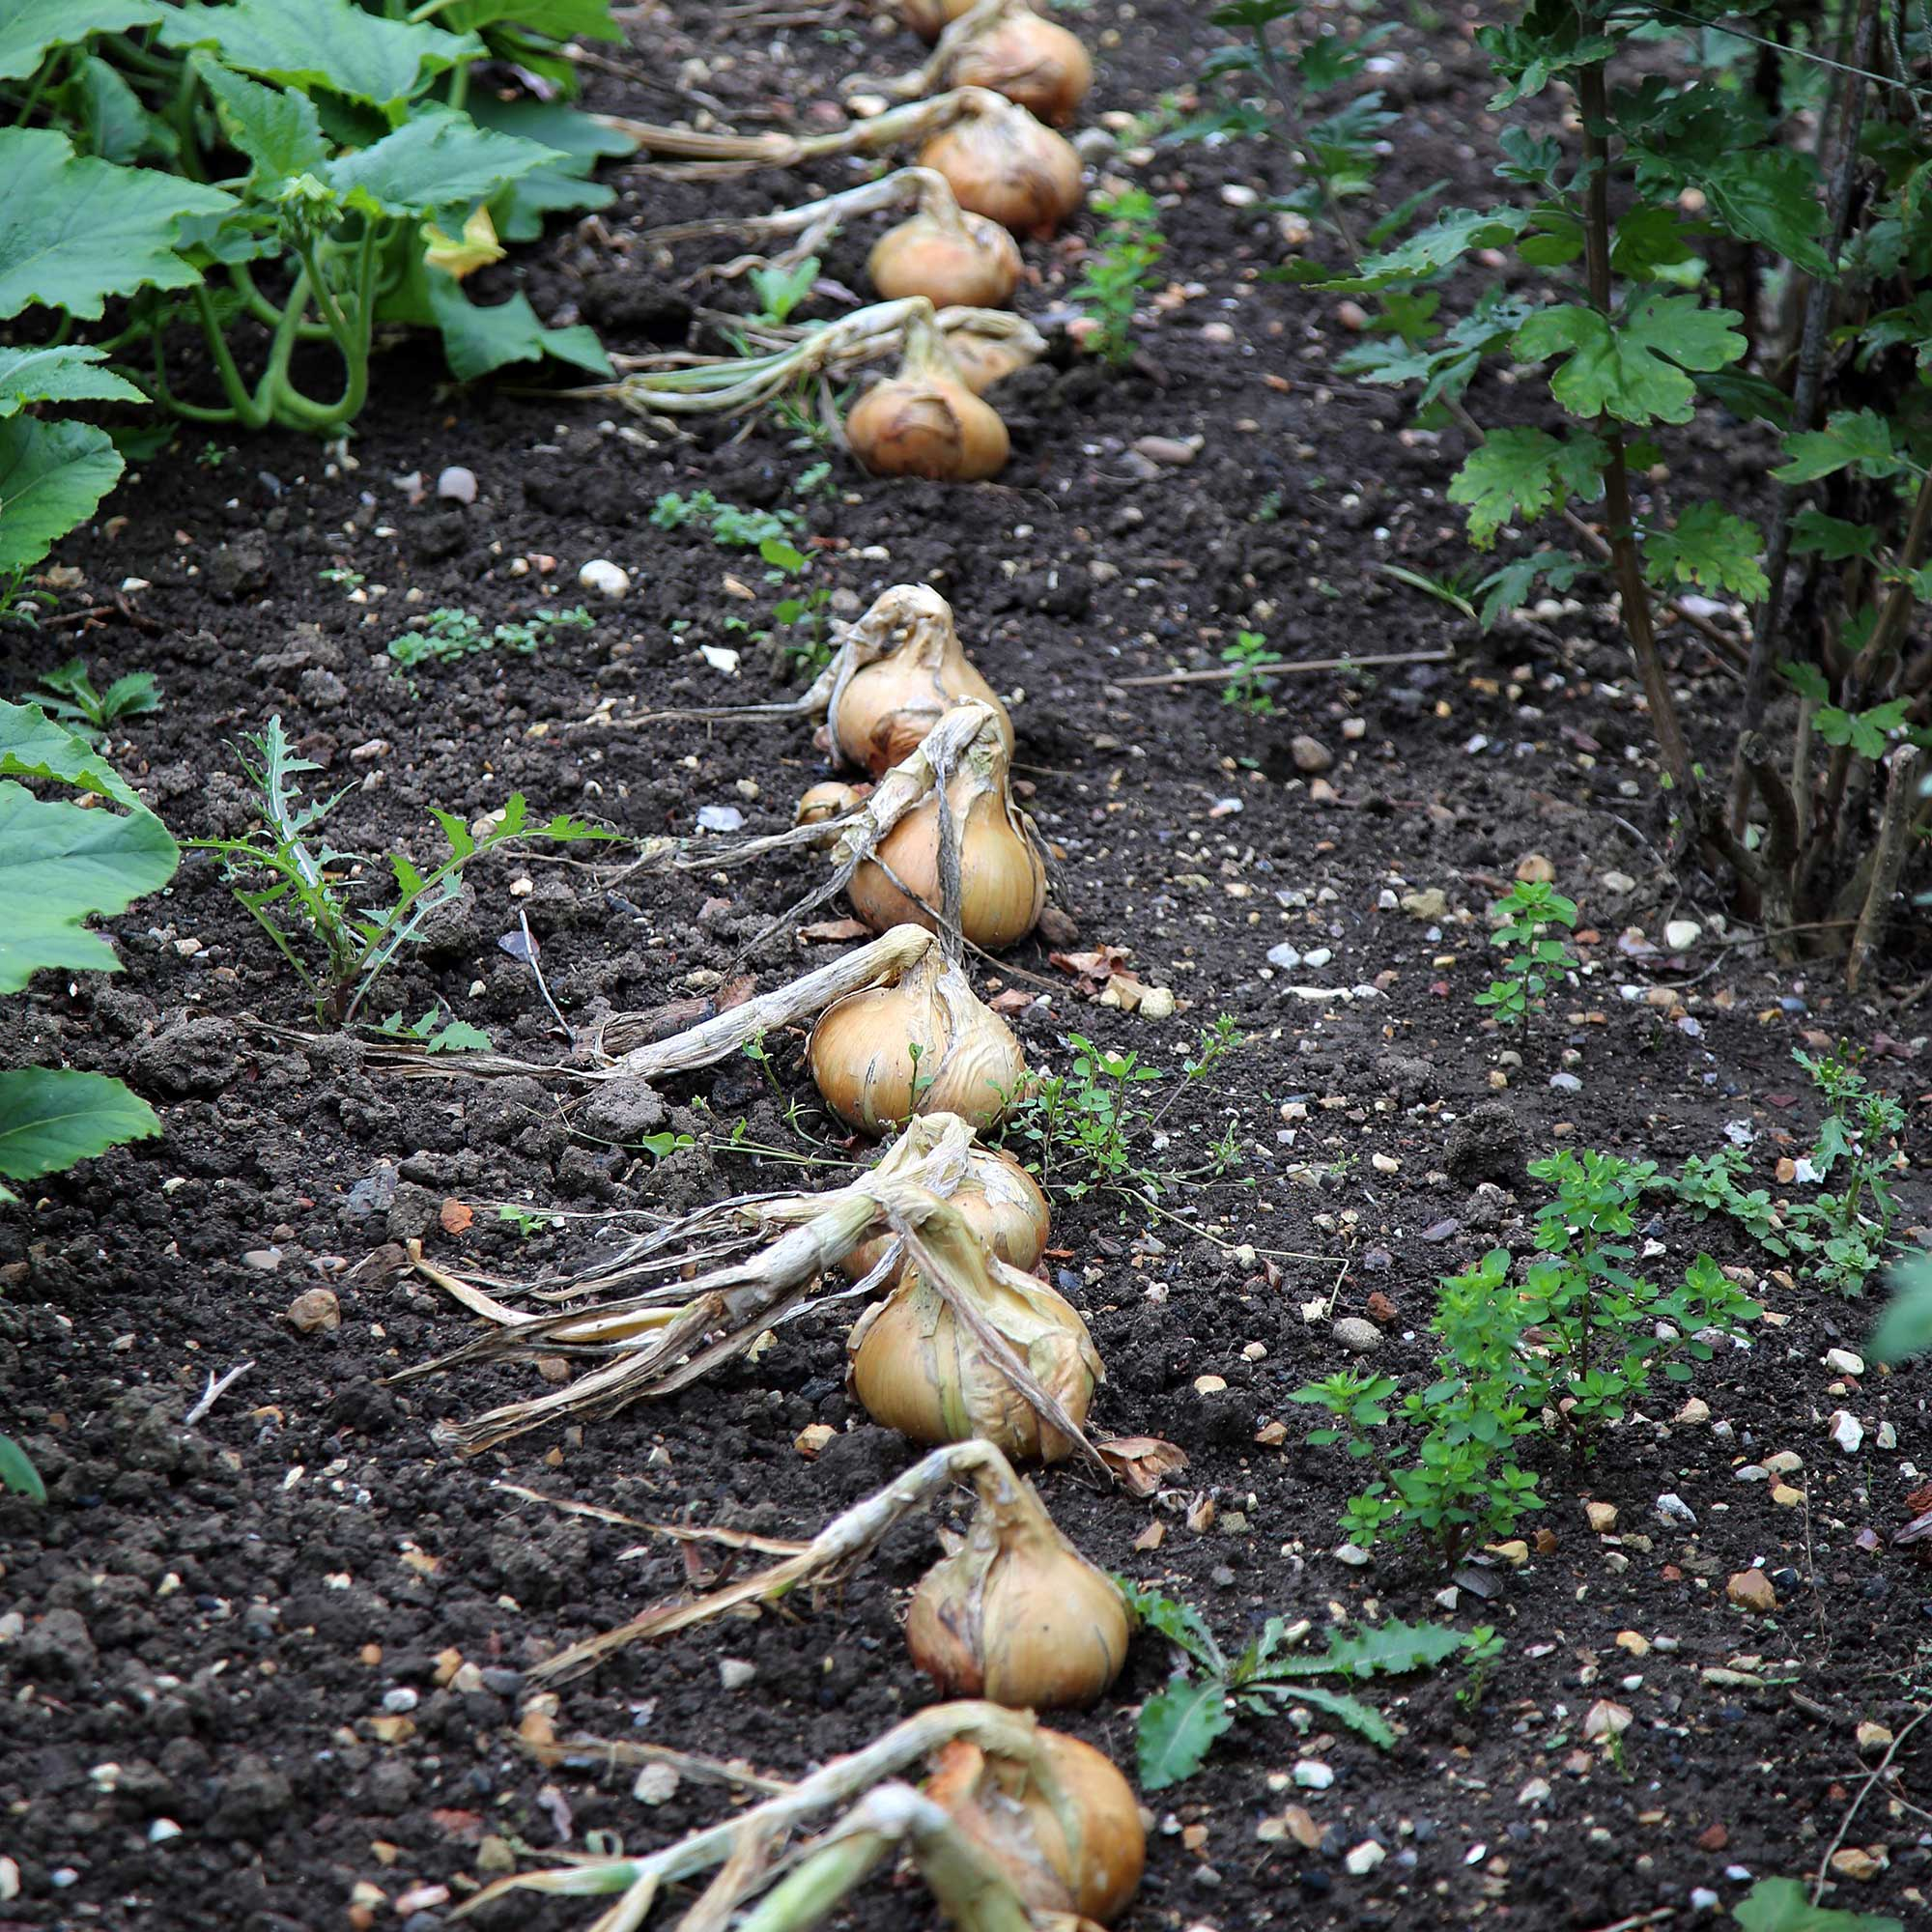 Onions with tops fallen ready to harvest